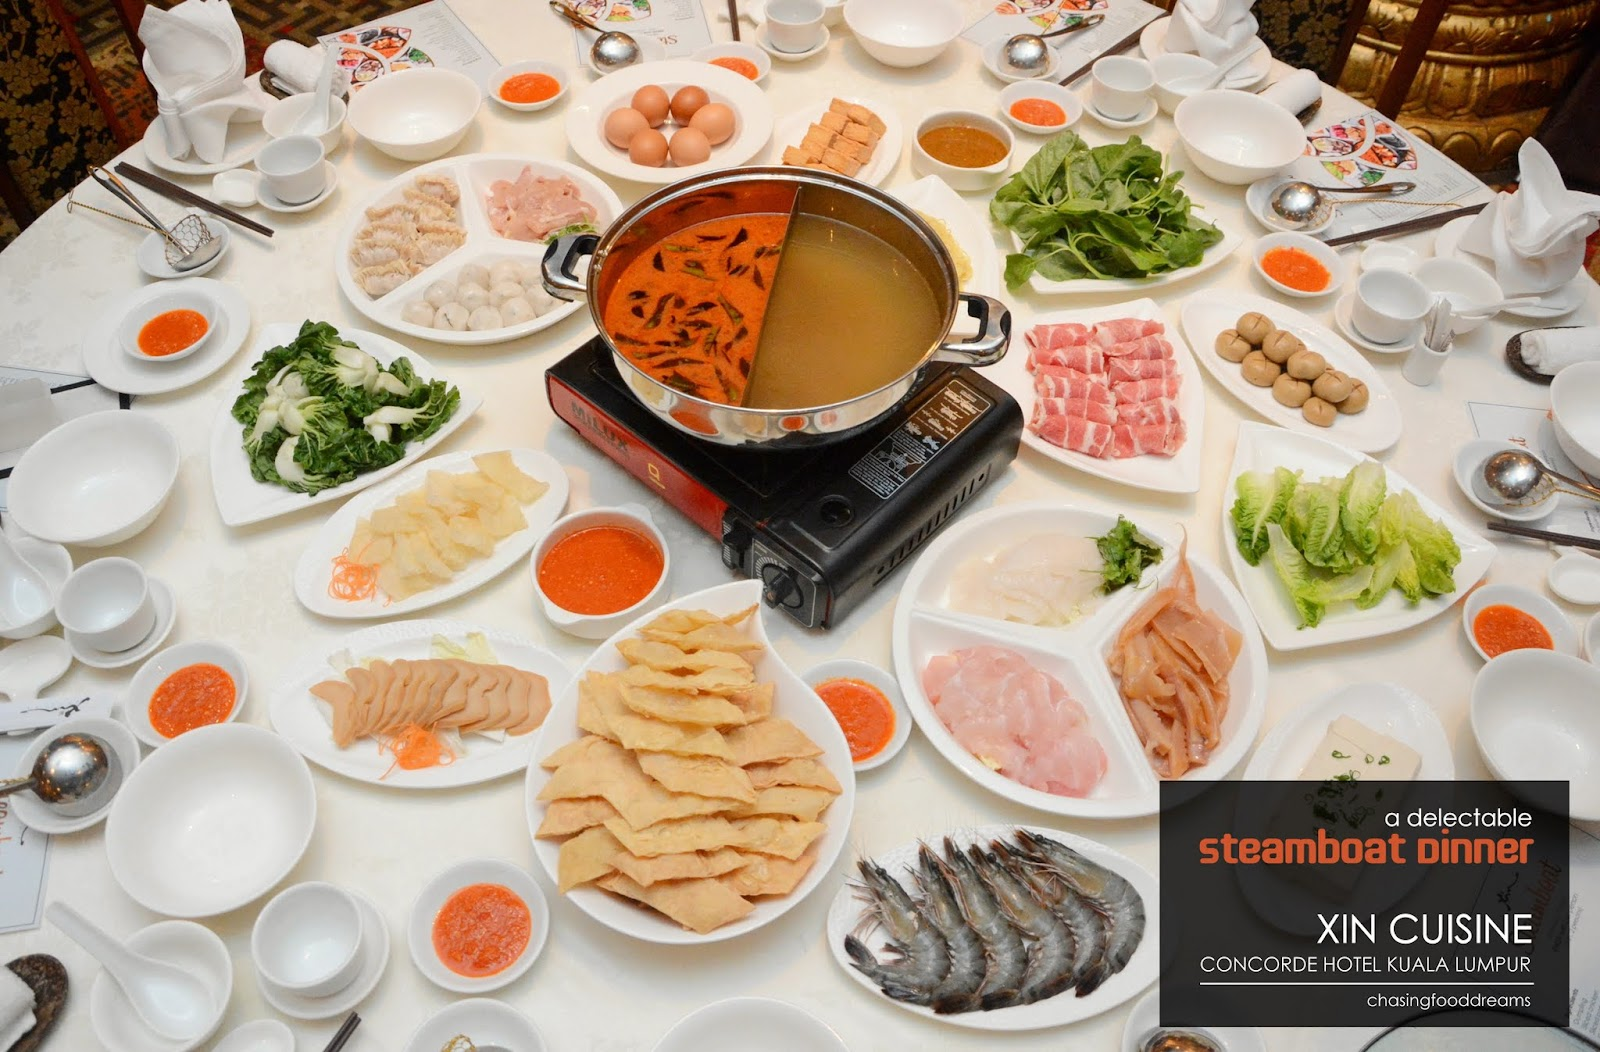 Chasing Food Dreams Steamboat Dinner Xin Cuisine Concorde Hotel